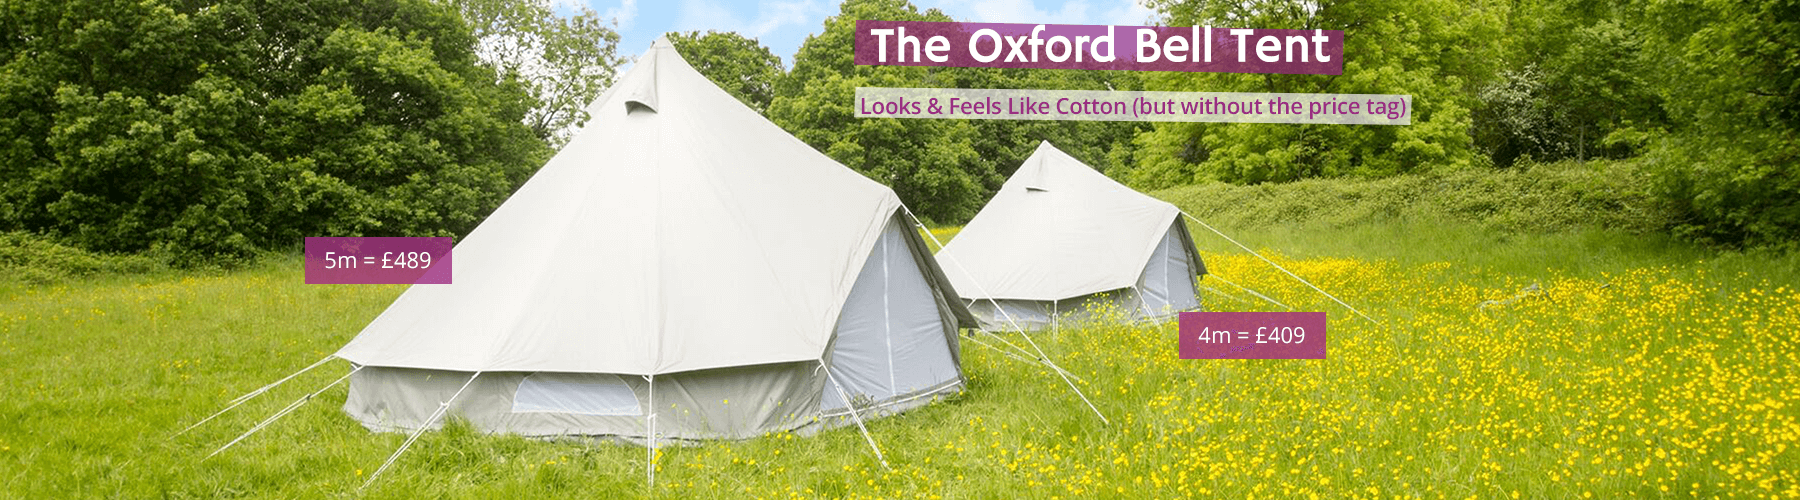 Oxford Bell Tents